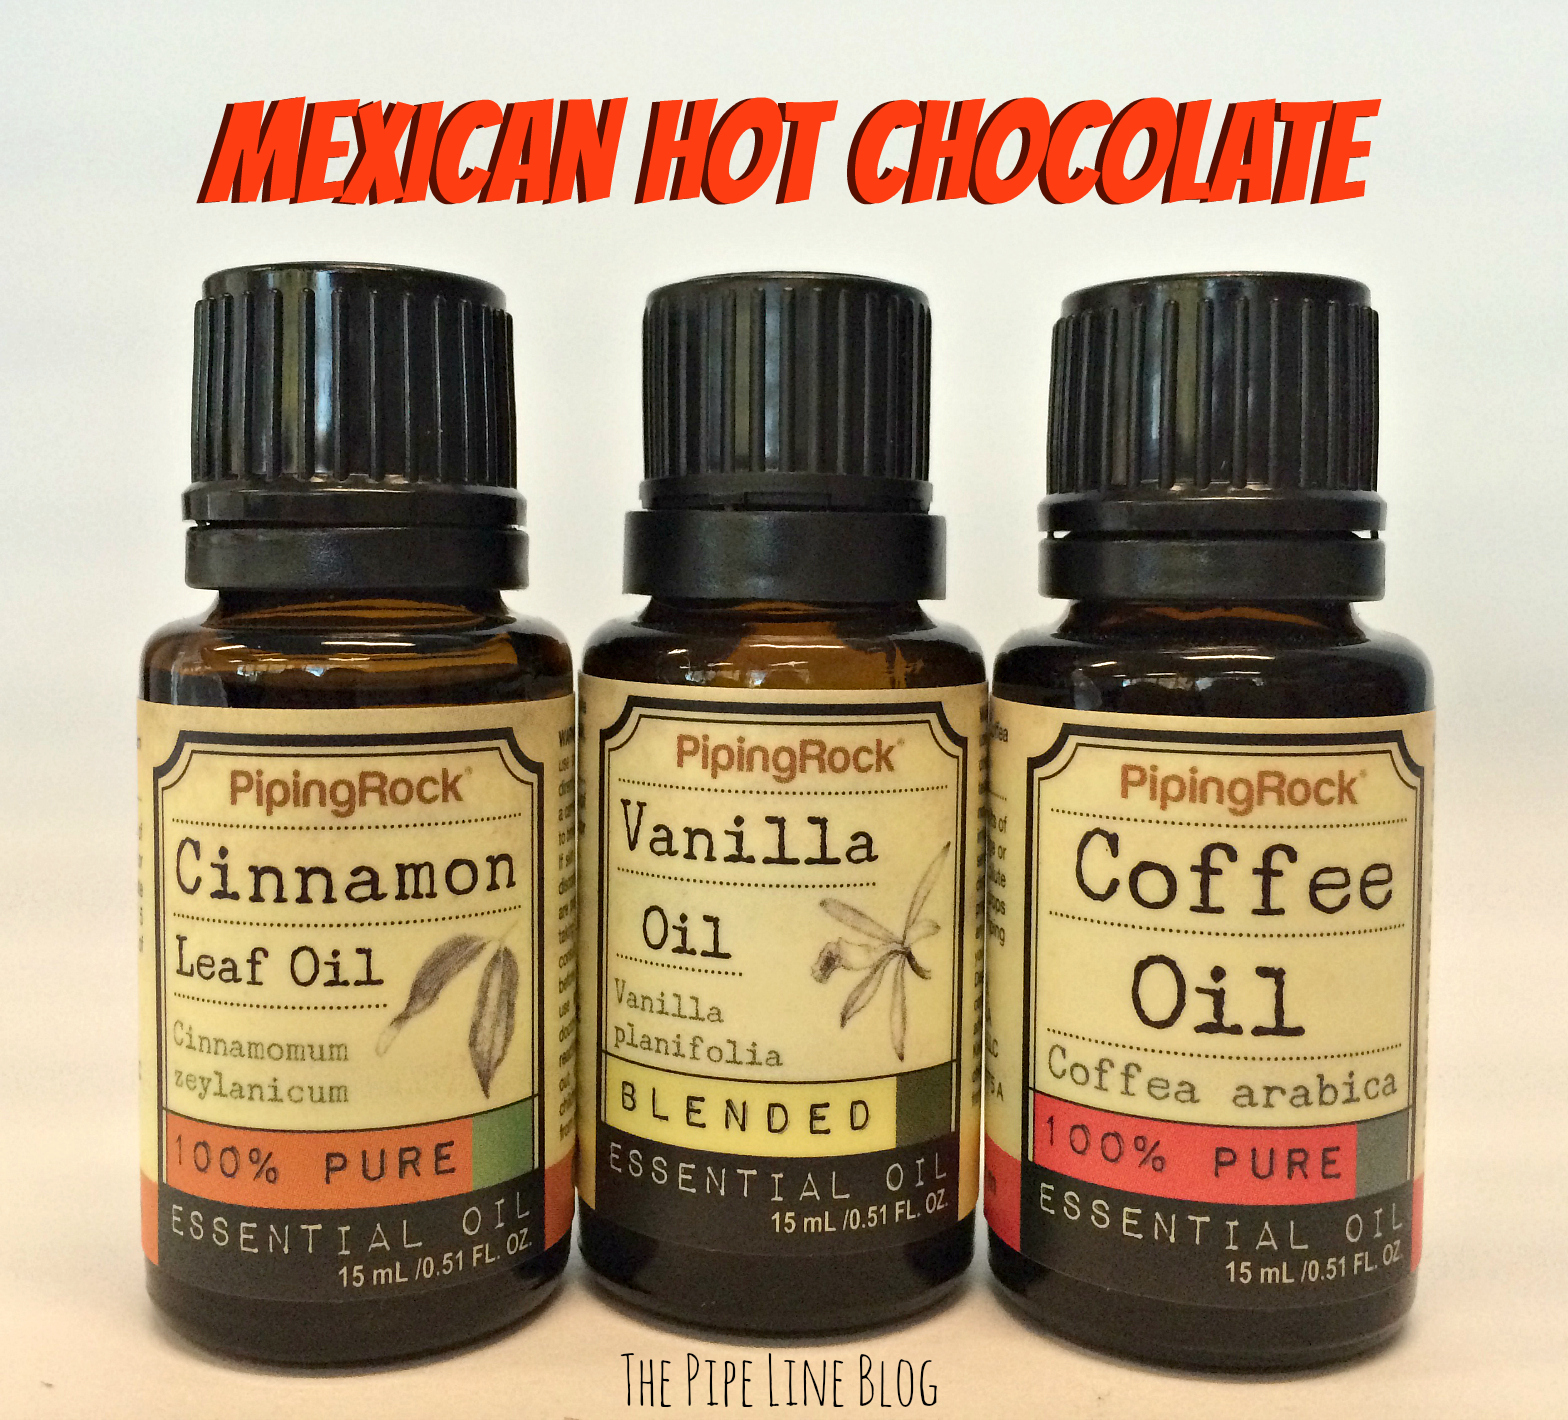 Piping Rock - The Pipe Line - Mexican Hot Chocolate Aromatherapy Recipe